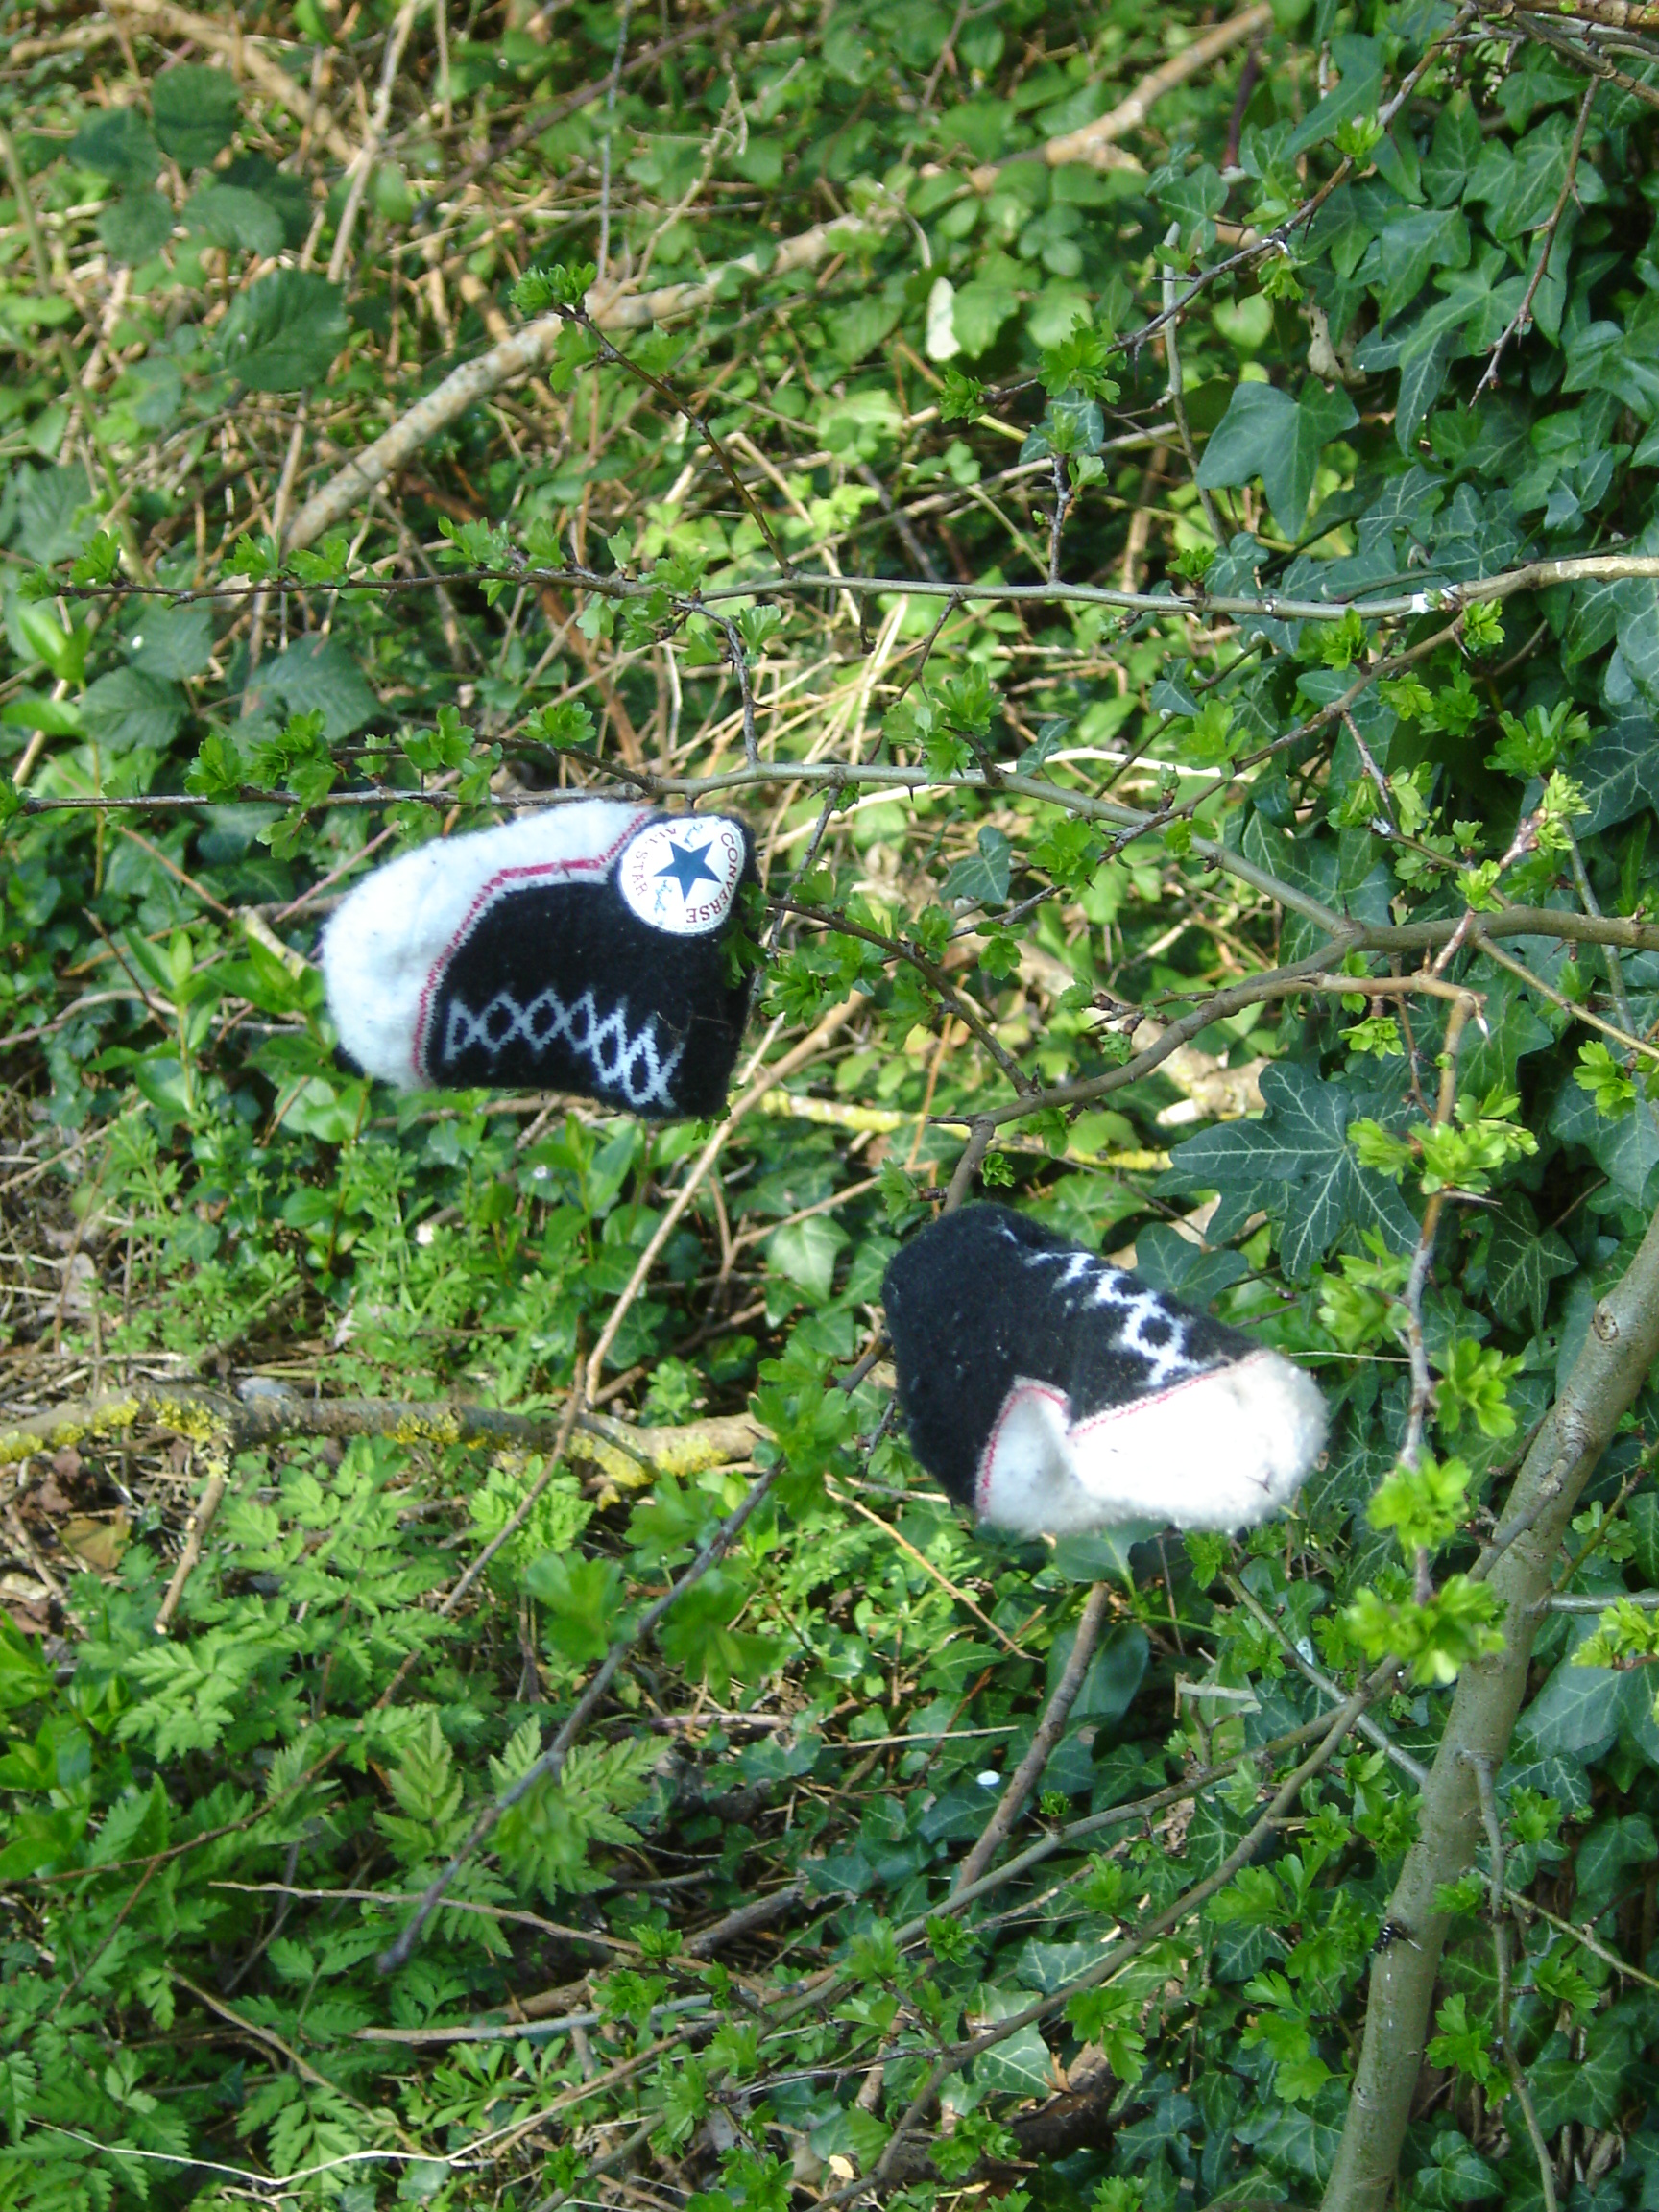 Shoes on a tree, Meadow Lane, Donnington Bridge, Oxford